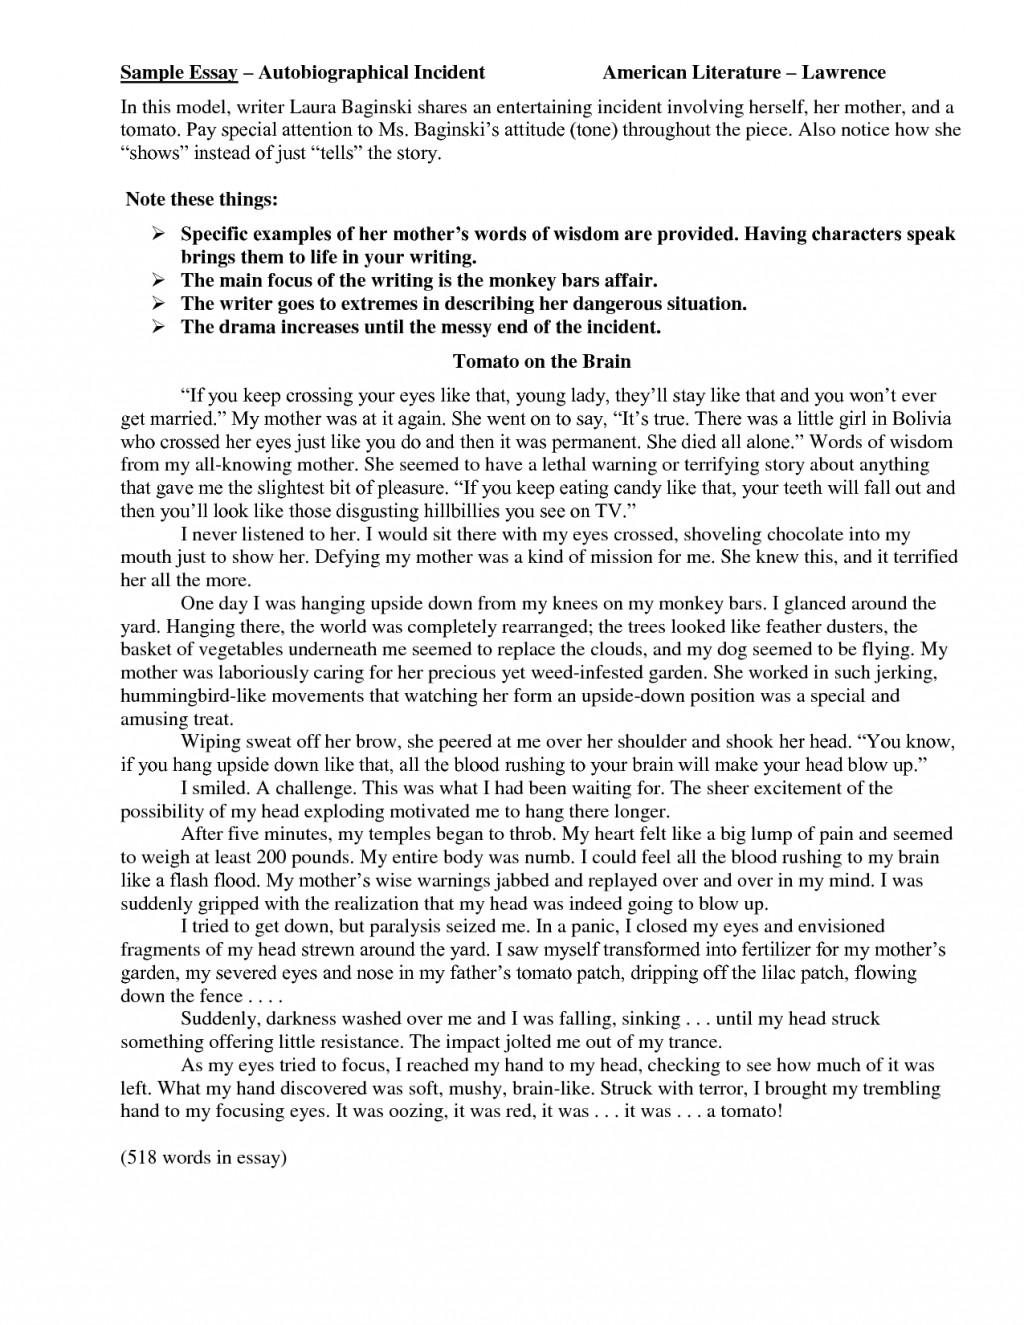 016 Autobiography Essay 85678 Unusual Examples Autobiographical Incident Format Samples Large